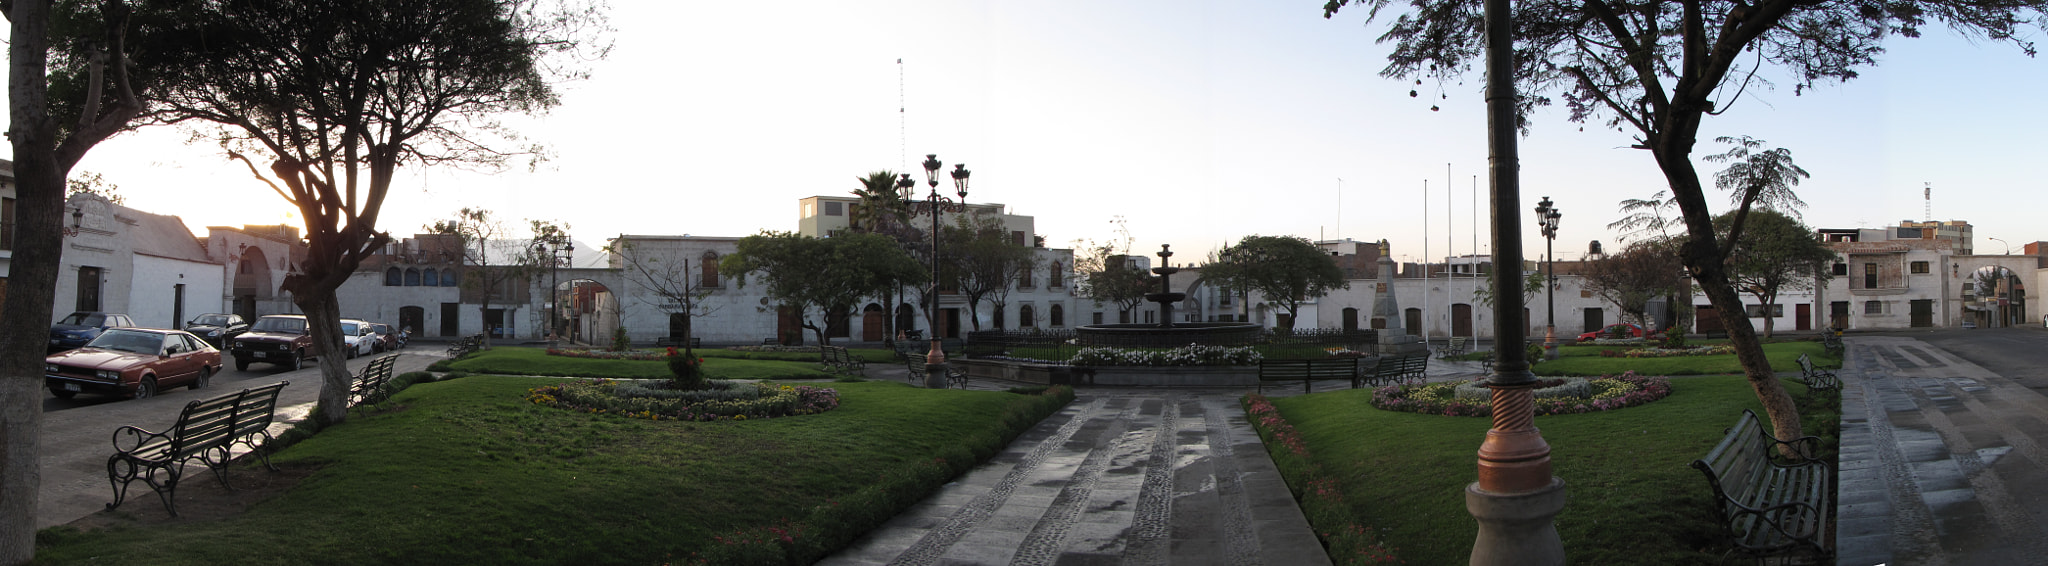 Photograph Plaza de cayma (Panoramica) by Marcos  Granda P. on 500px